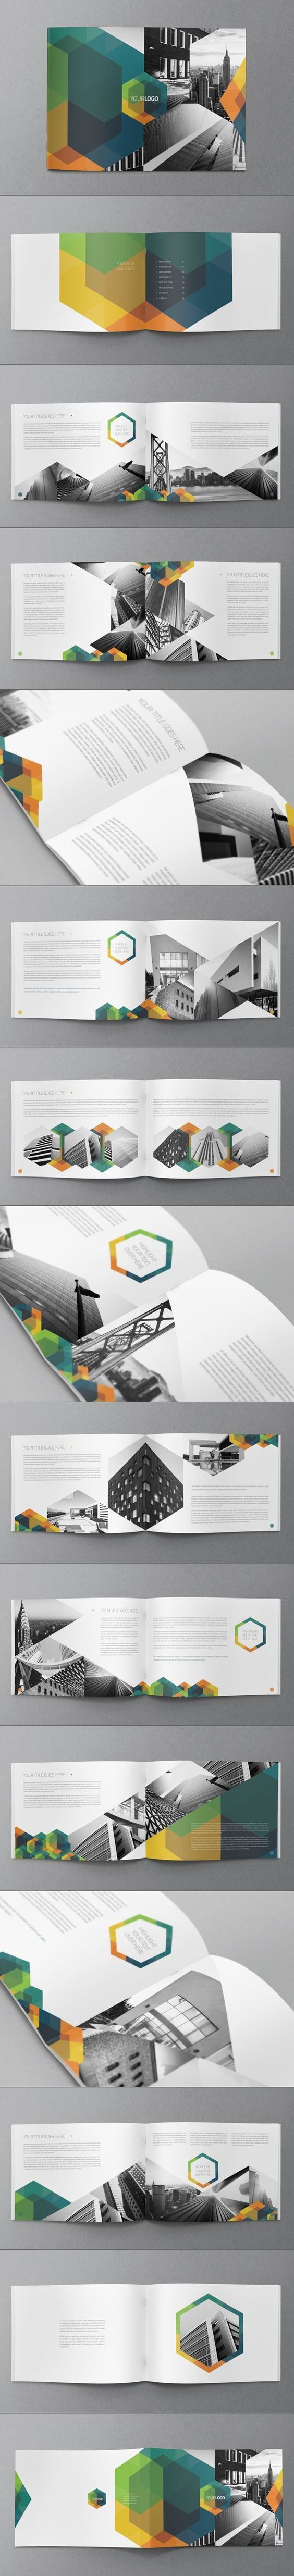 Hexo Brochure Design by Abra Design | Graphic Design. I don't usually like templates, but this is well done.